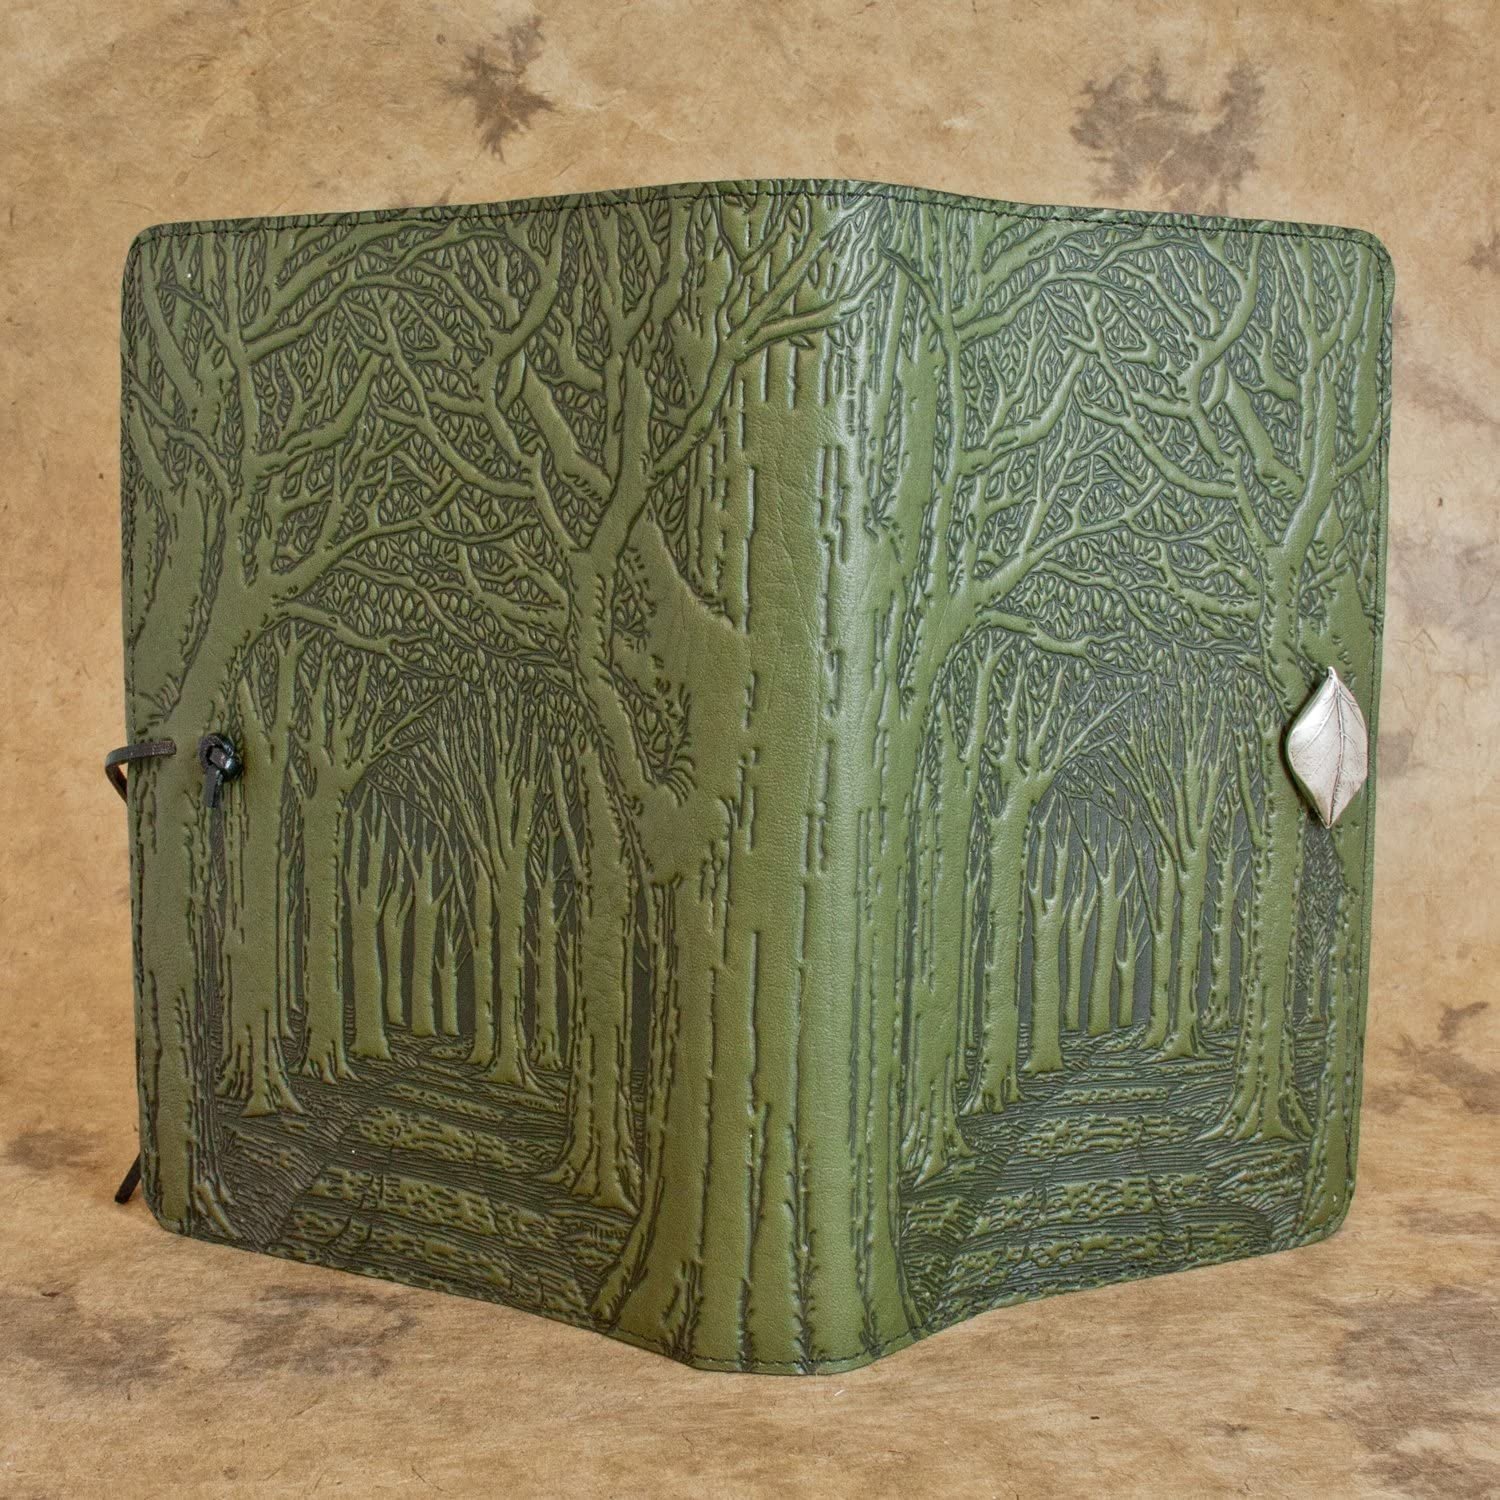 Genuine Leather Refillable Journal Cover with a Hardbound Blank Insert 6x9 Inches Fern Color with Pewter Button Made in The USA by Oberon Design Avenue of Trees